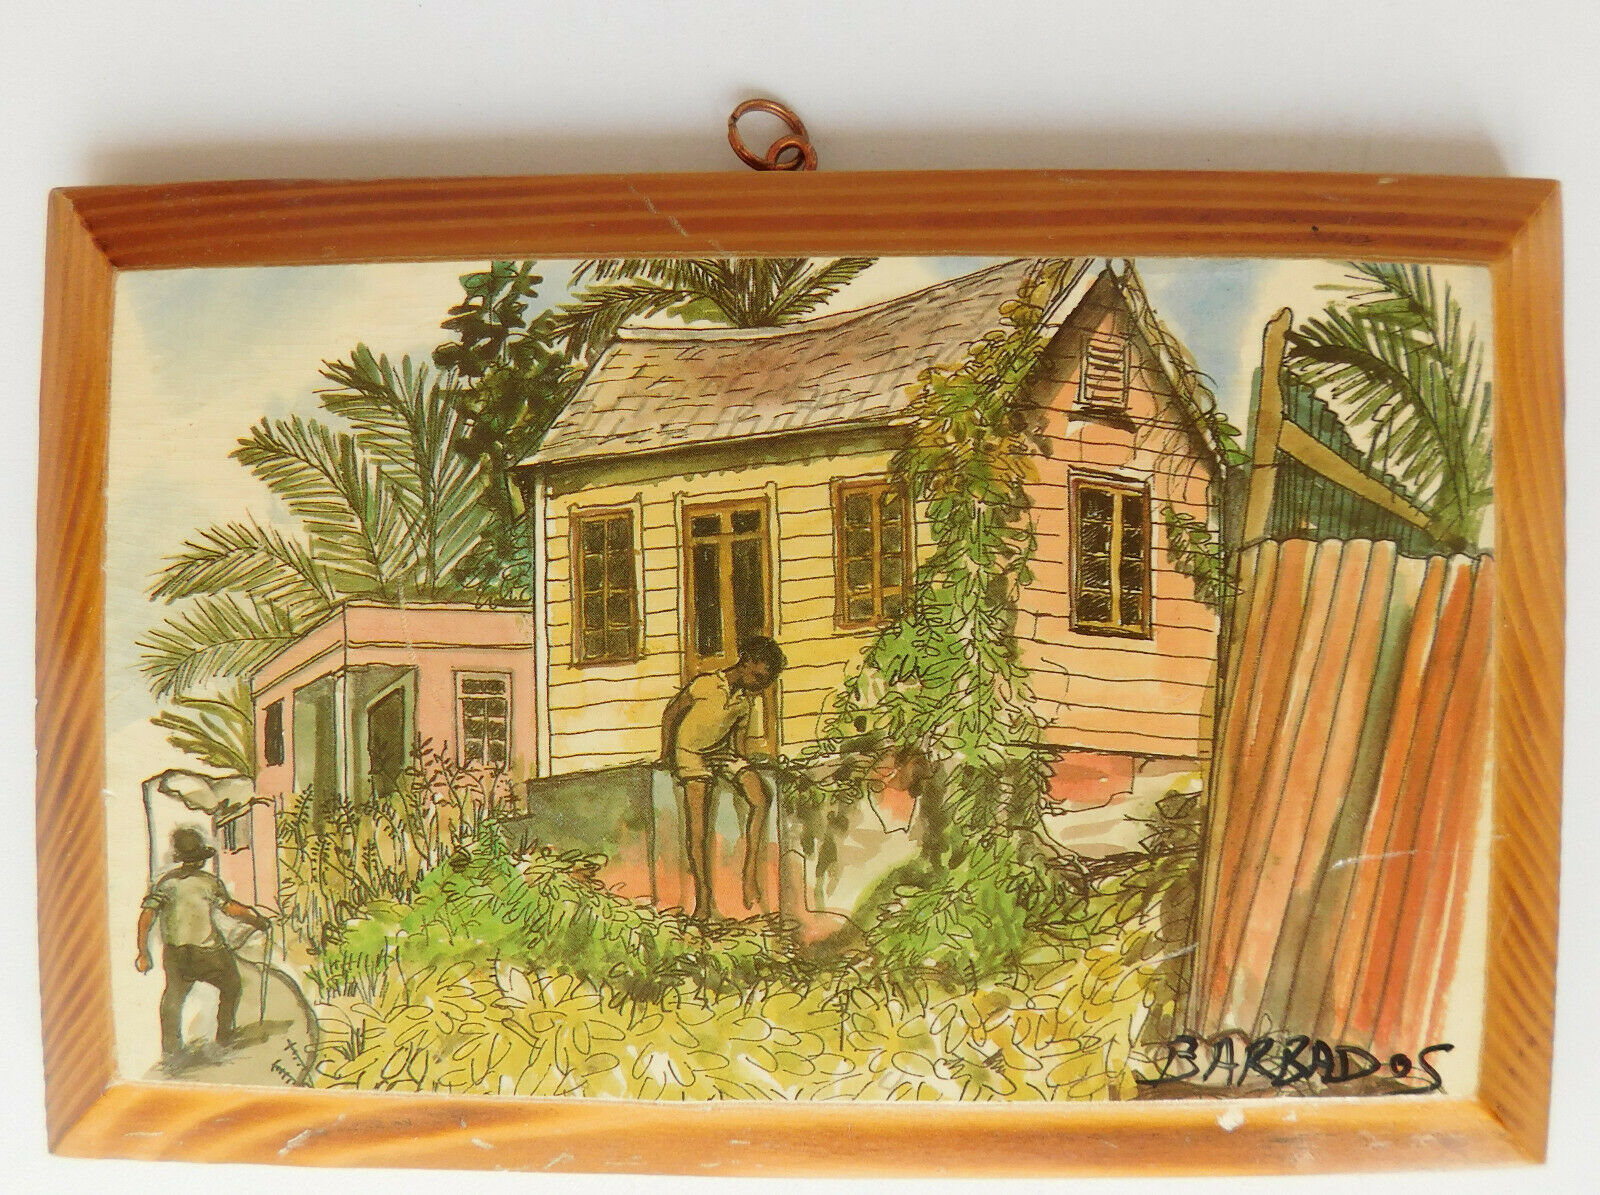 Picture of Barbados on wooden wall plaque vintage Caribbean art tourist souvenir